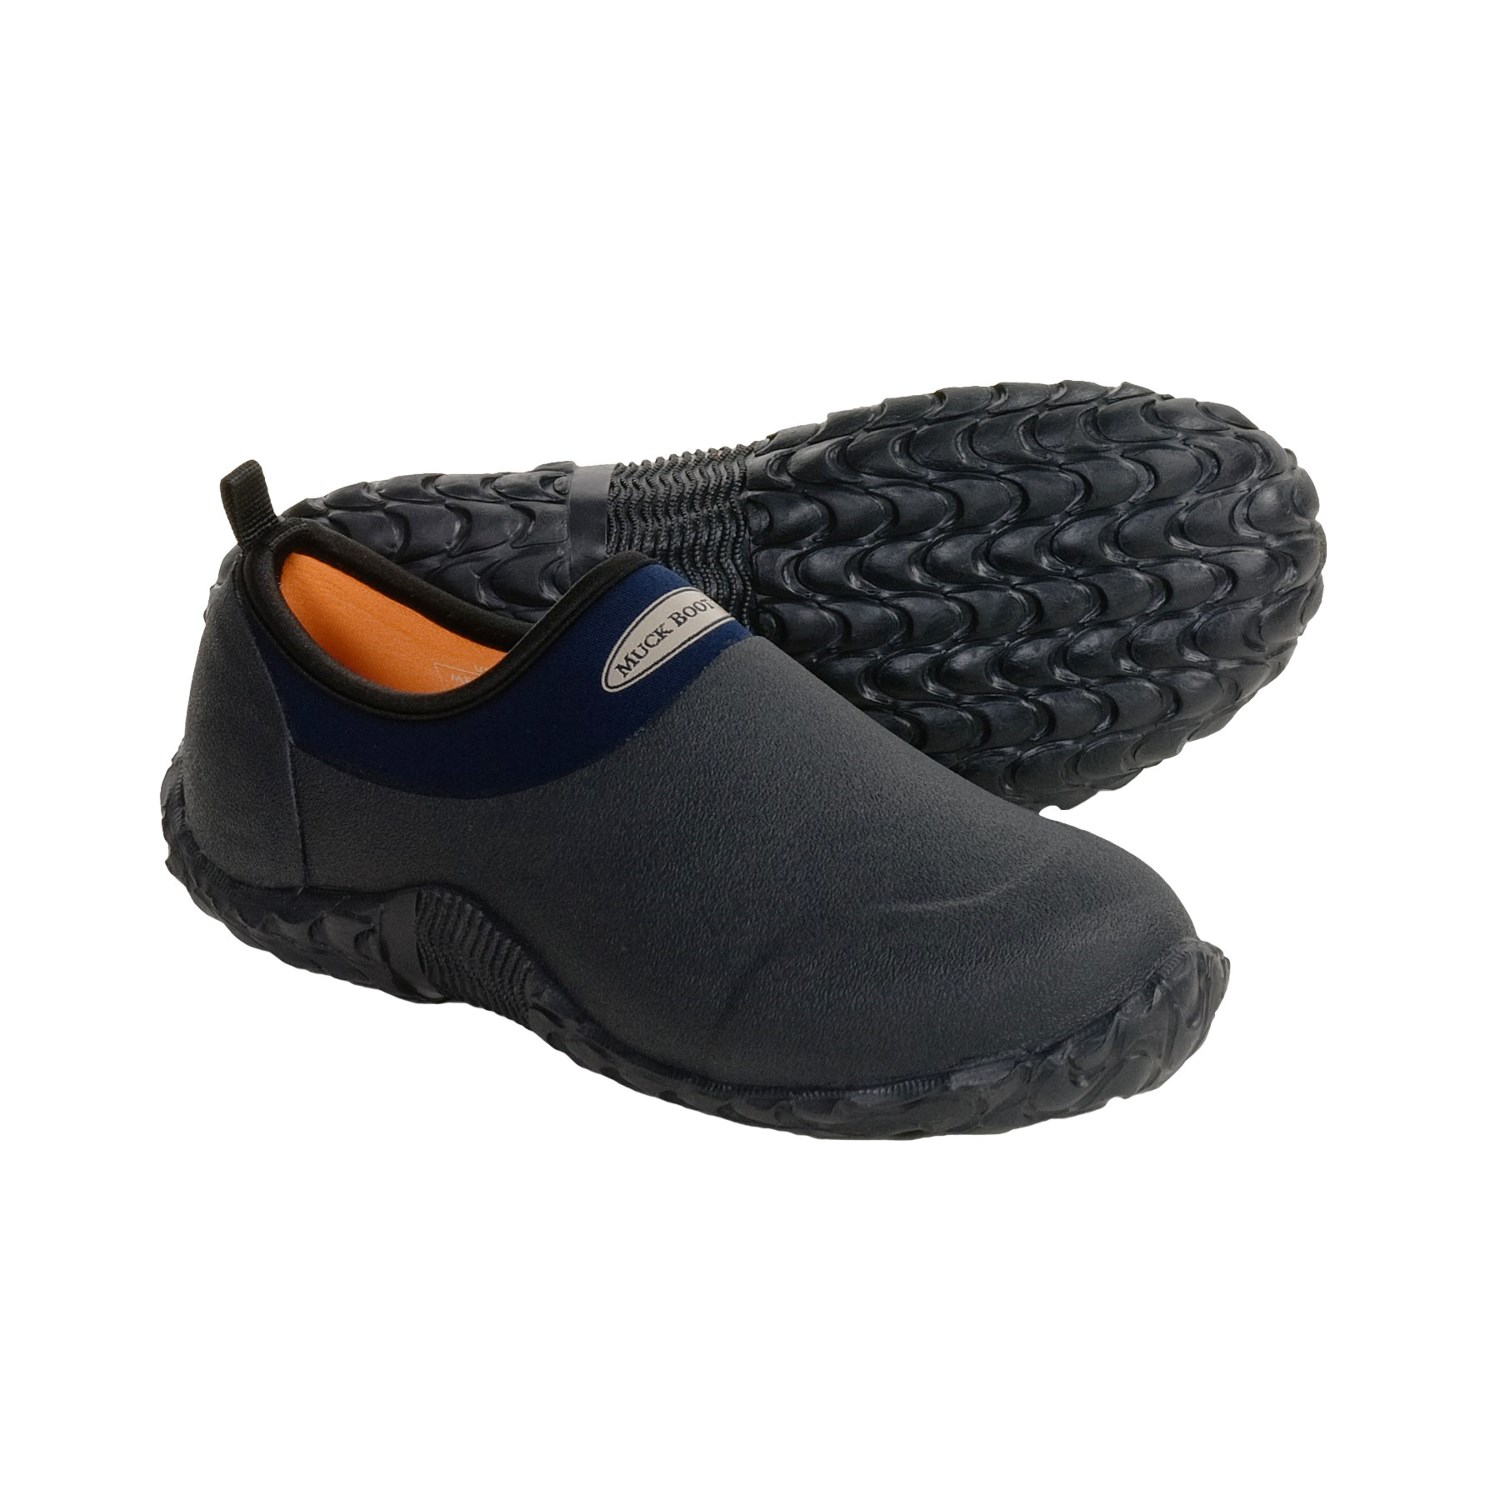 Waterproof Shoes For Burn Victims Myideasbedroomcom